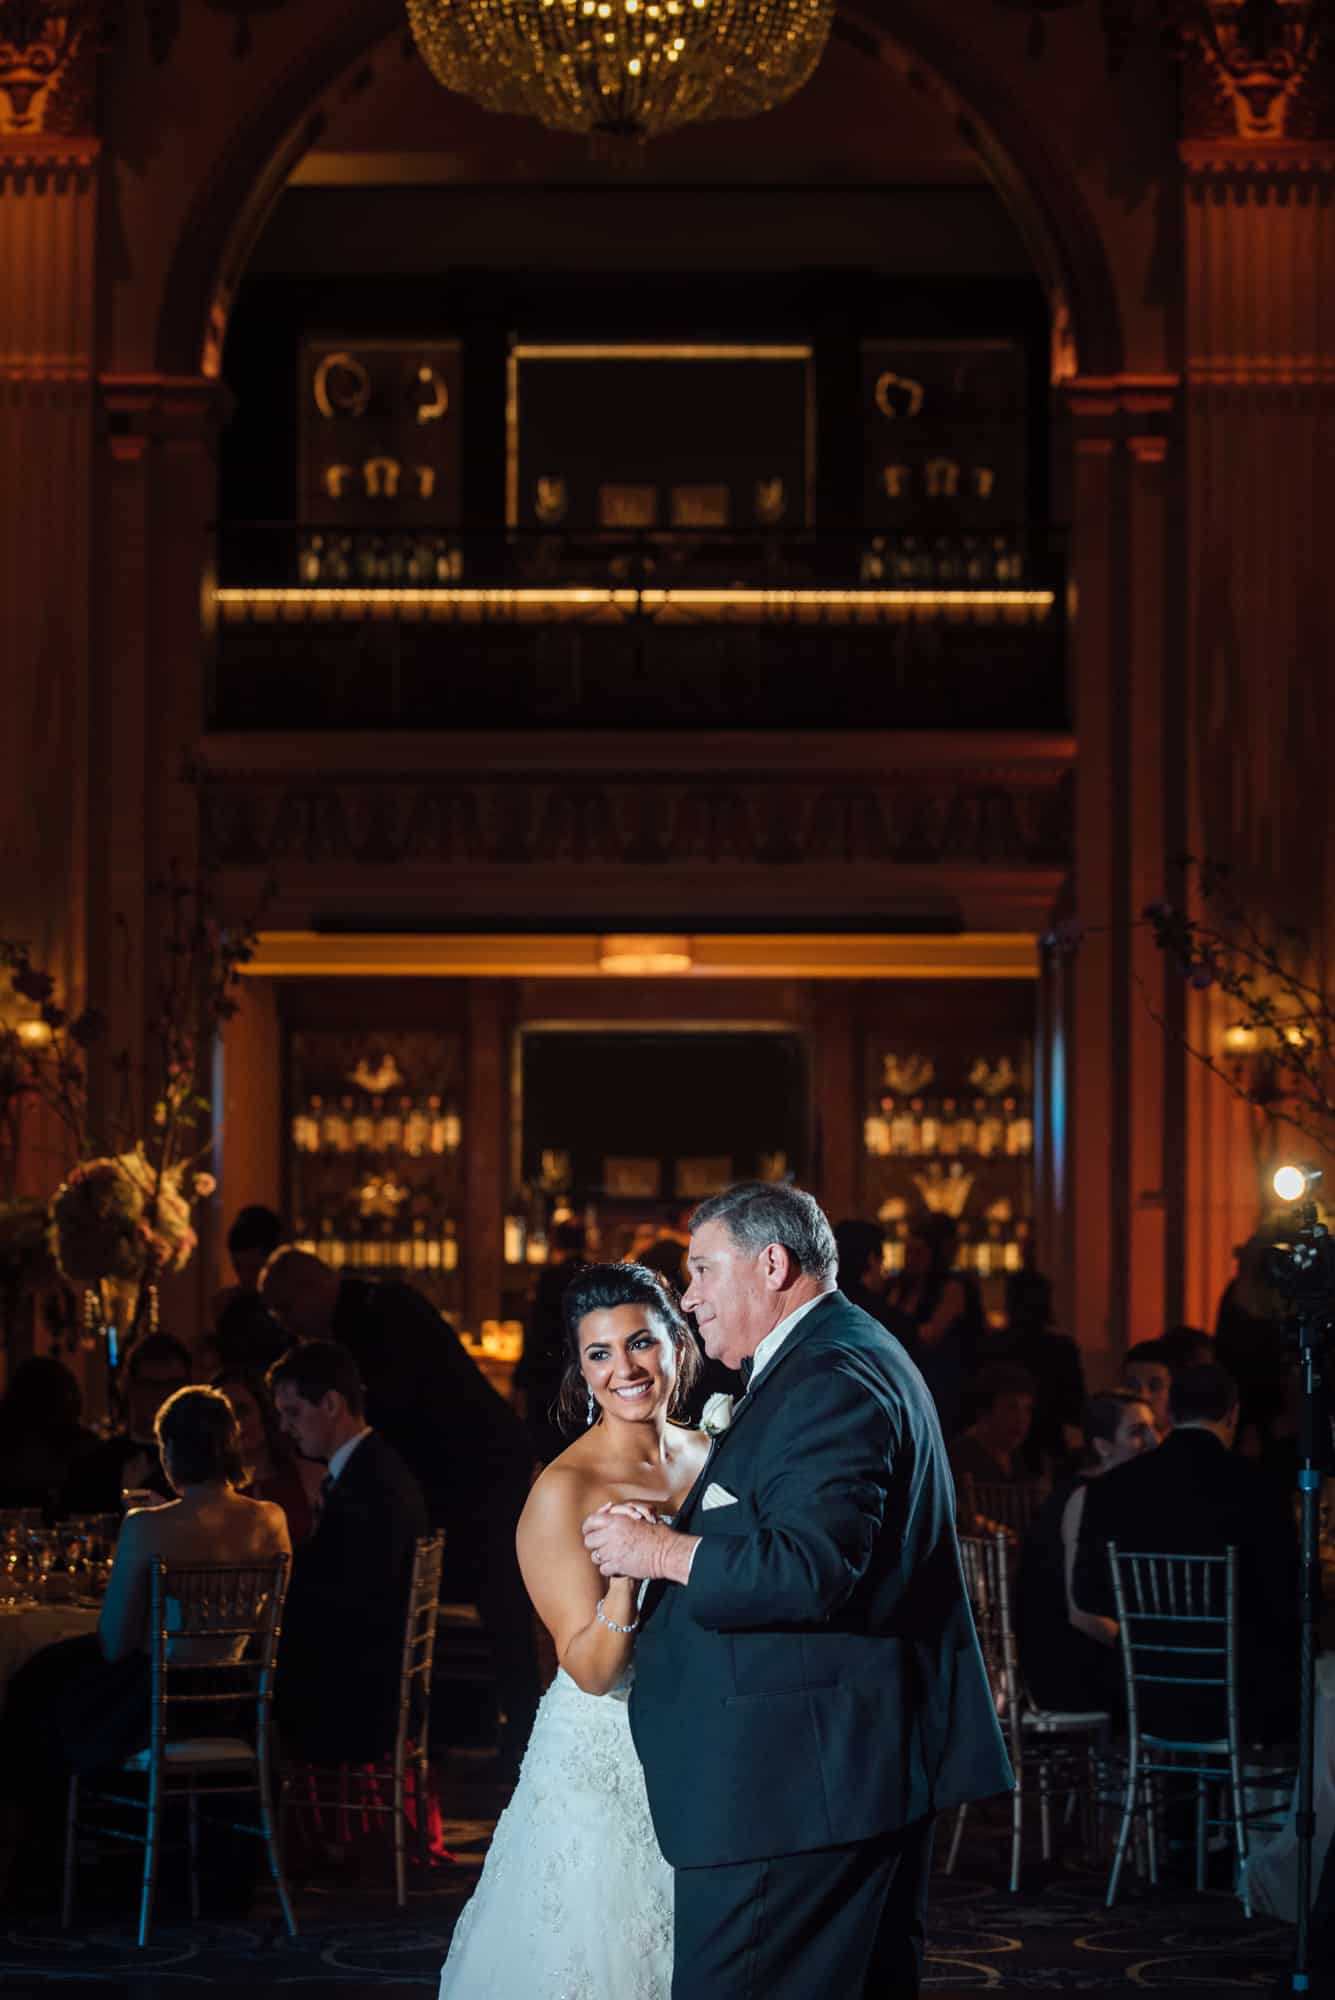 Bride and her father dancing at the Ballroom at the Ben